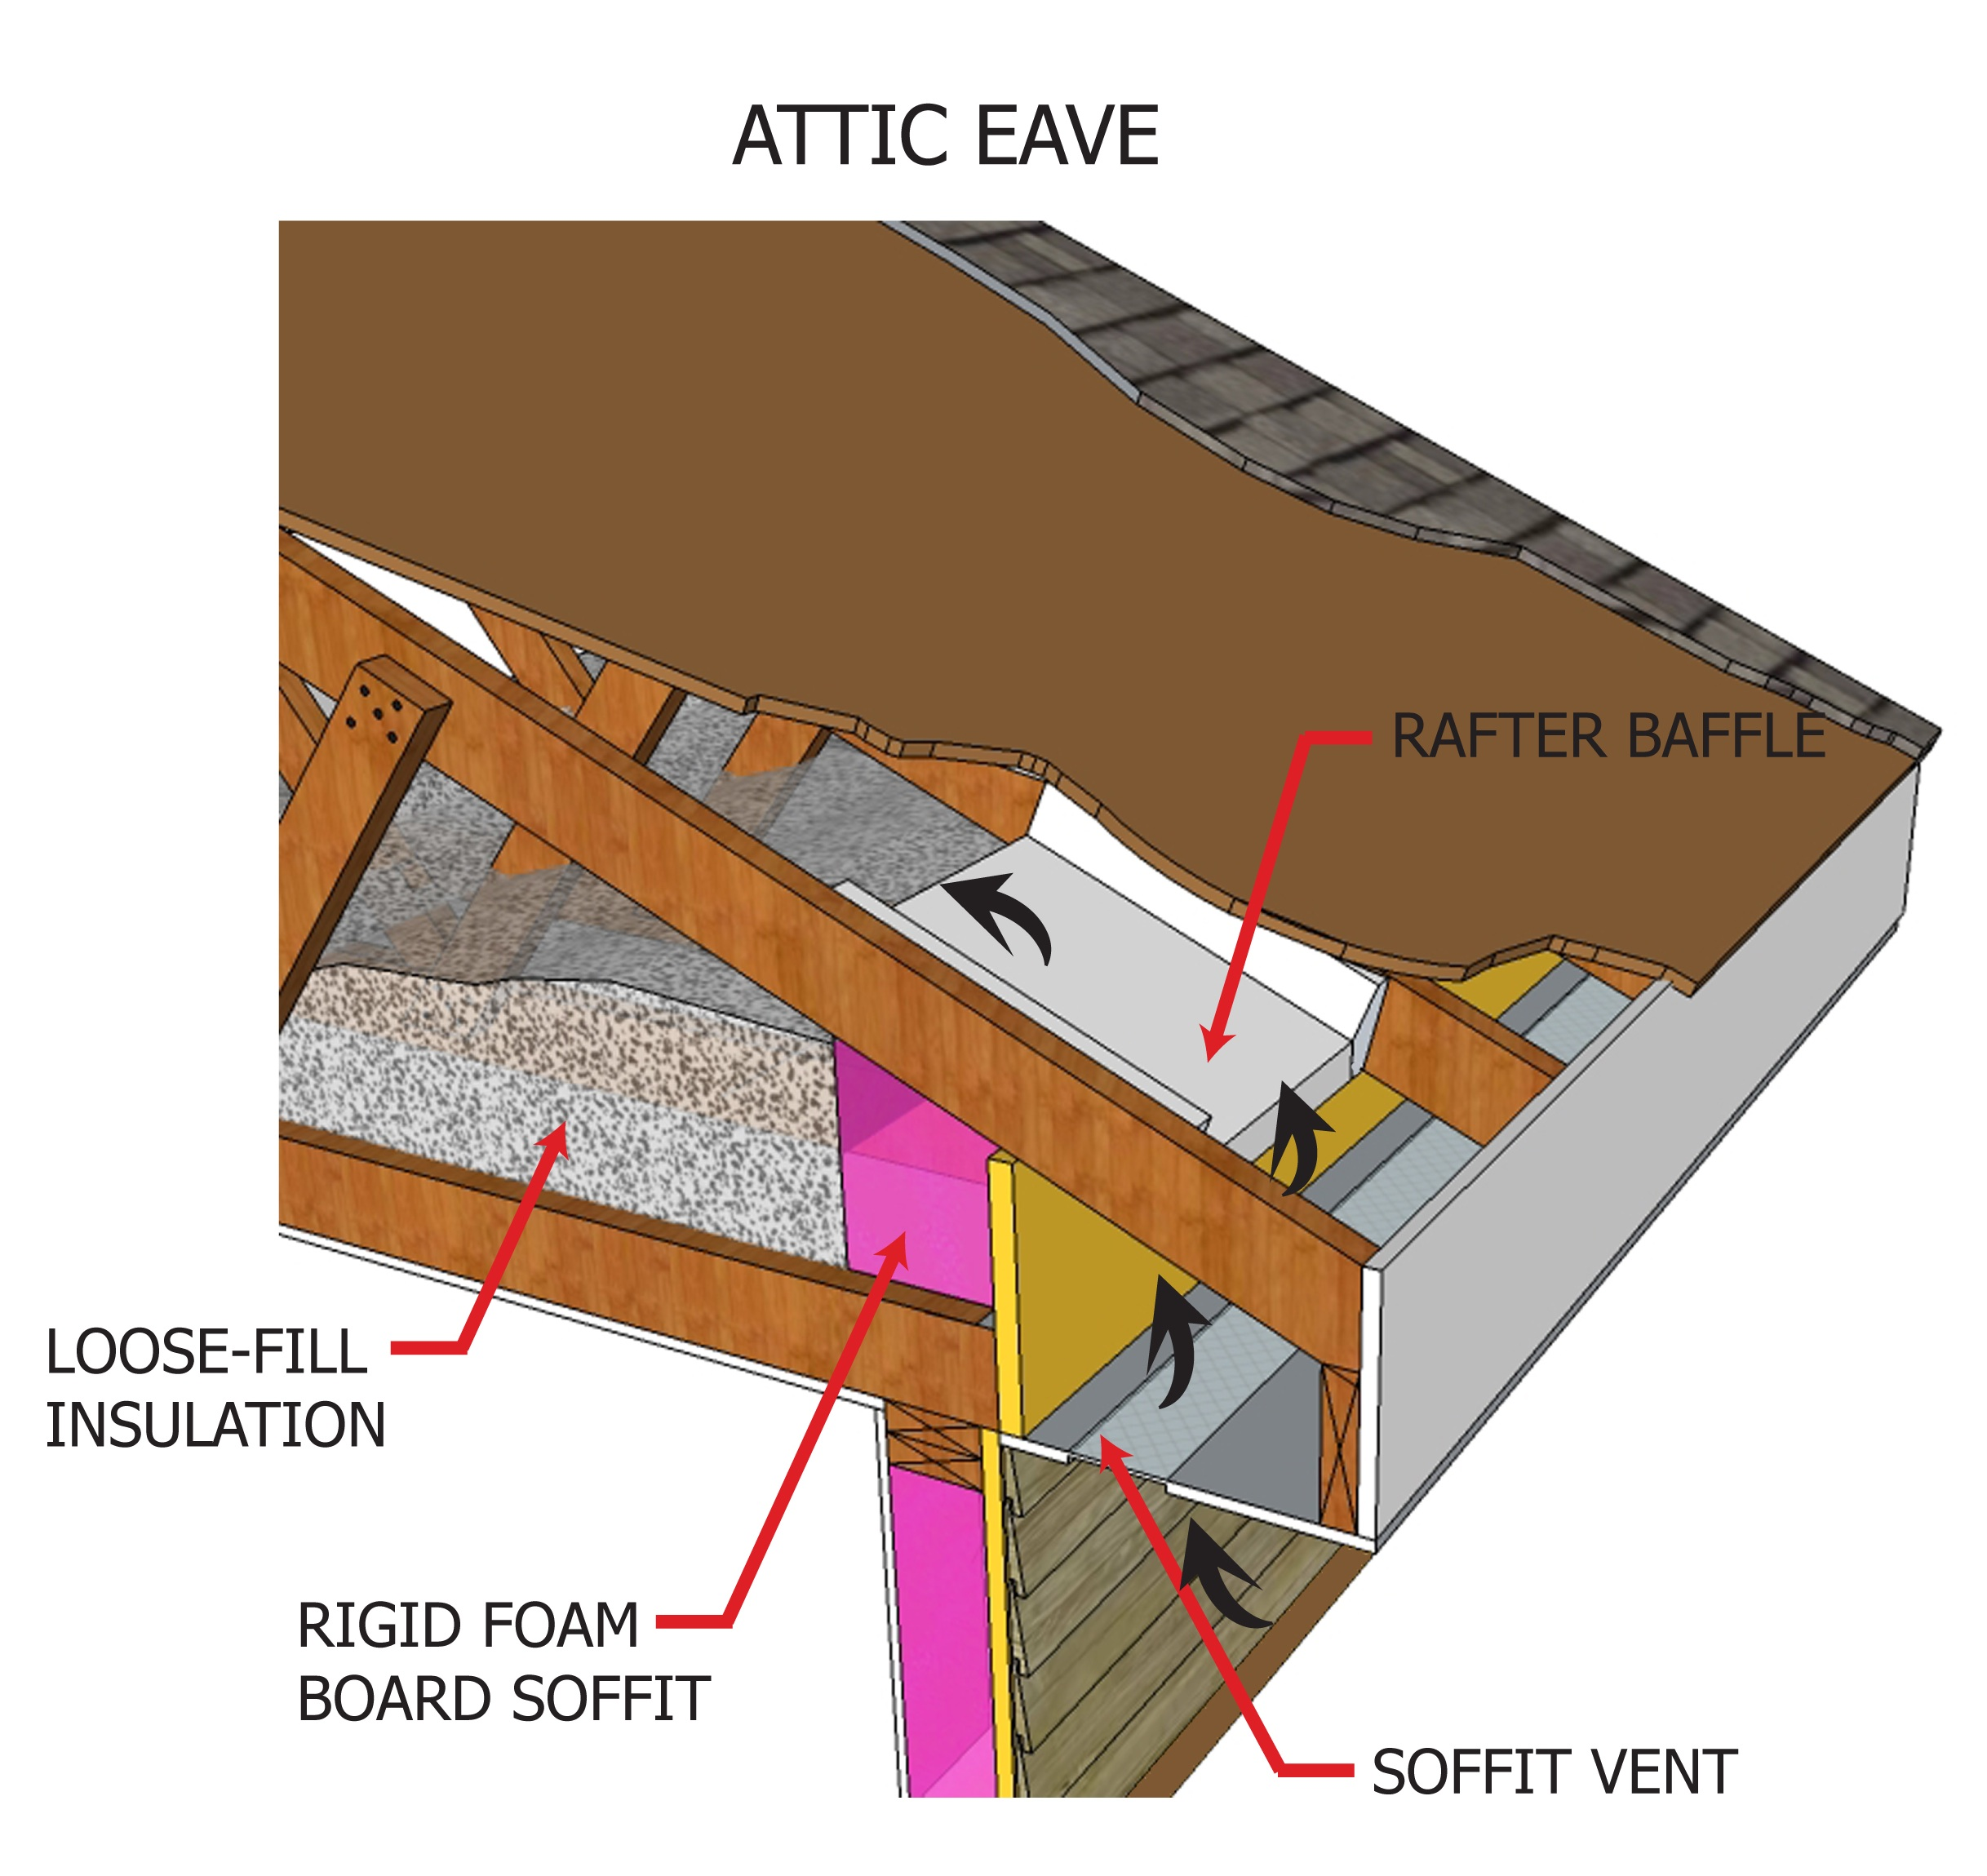 Attic Eave Loose Fill Insulation 2d Jpg